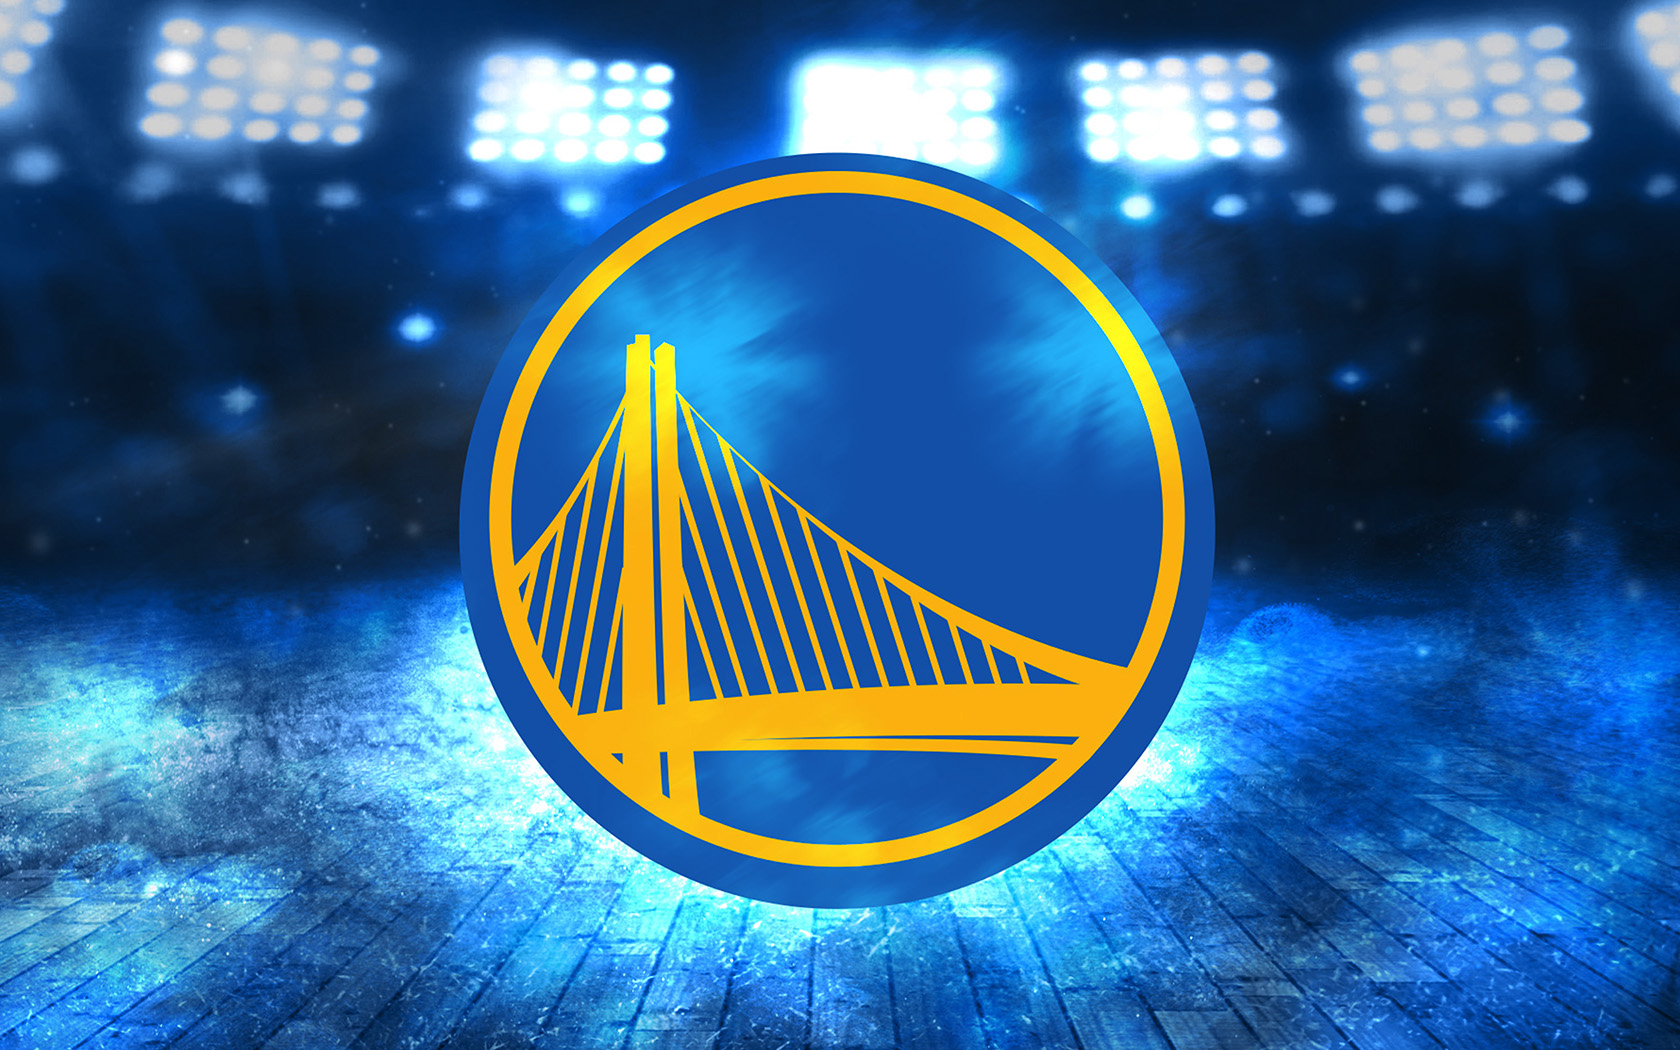 Air Anime Wallpaper Ar86 Golden State Warriors Logo Nba Sports Art